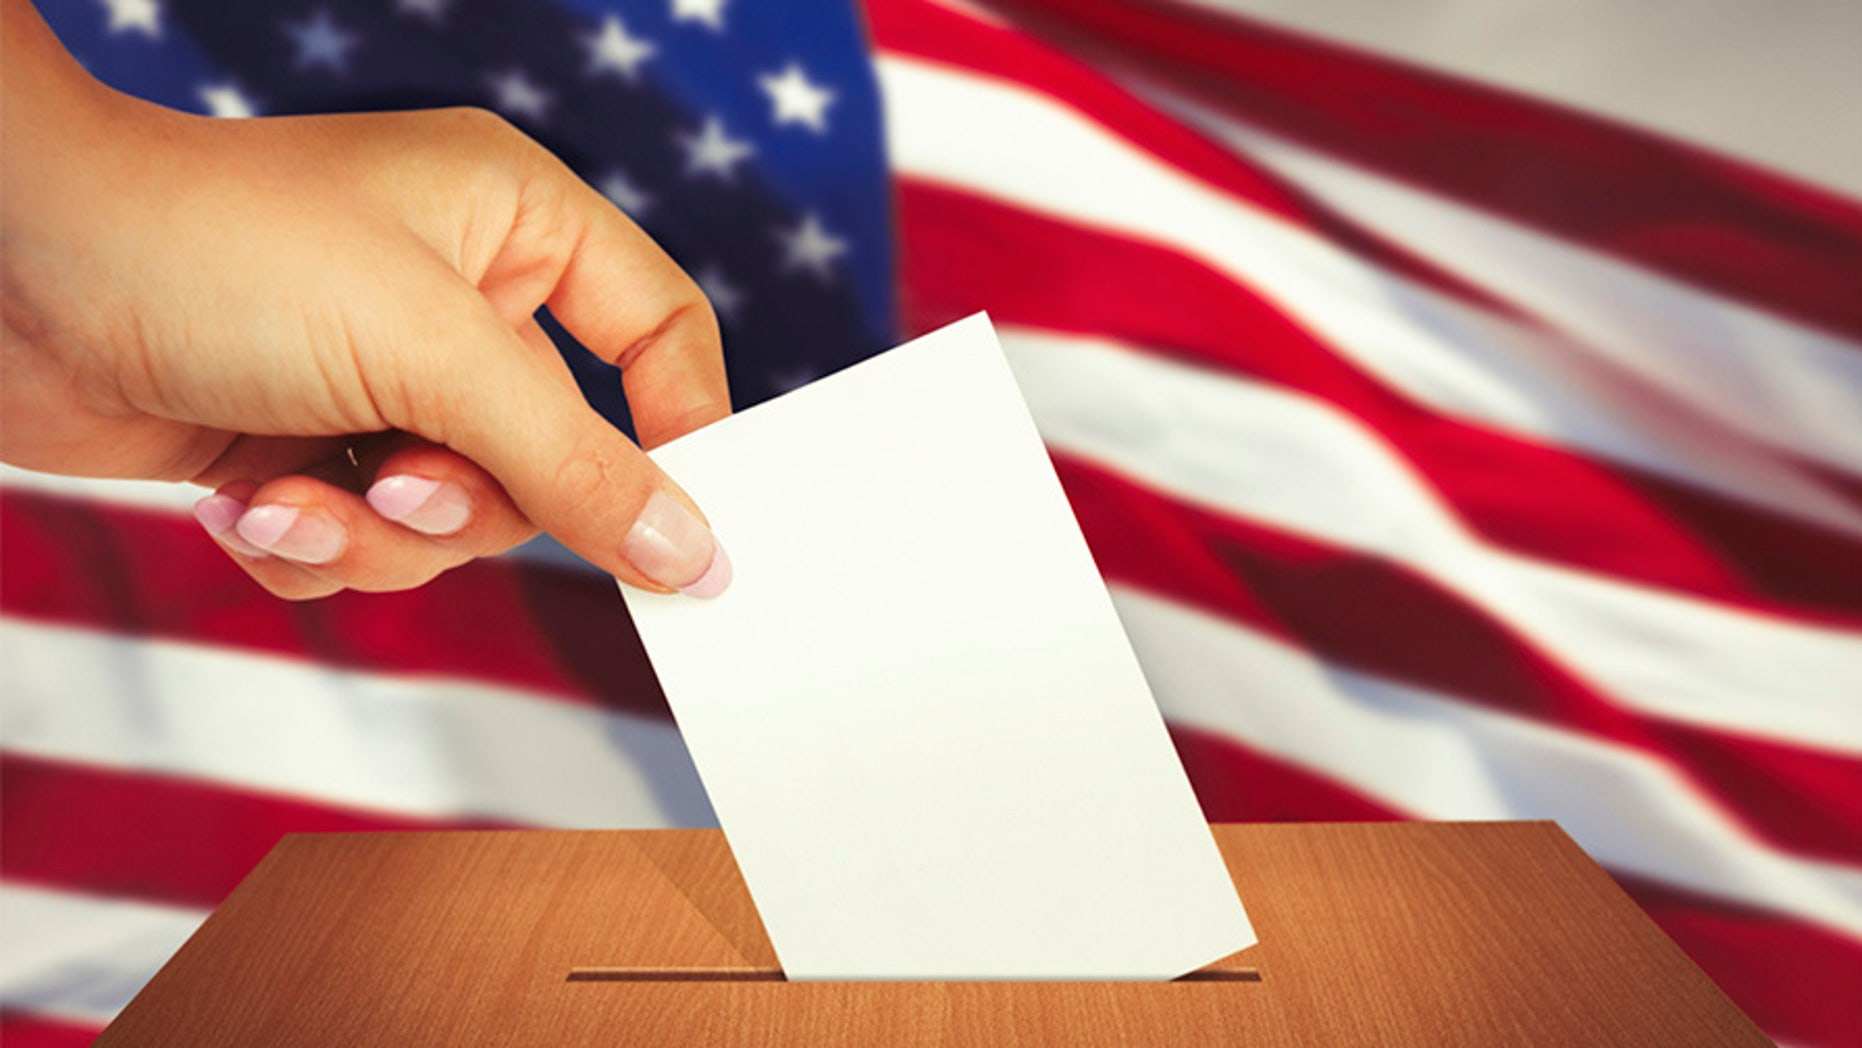 Should convicted felons regain their right to vote in Florida?